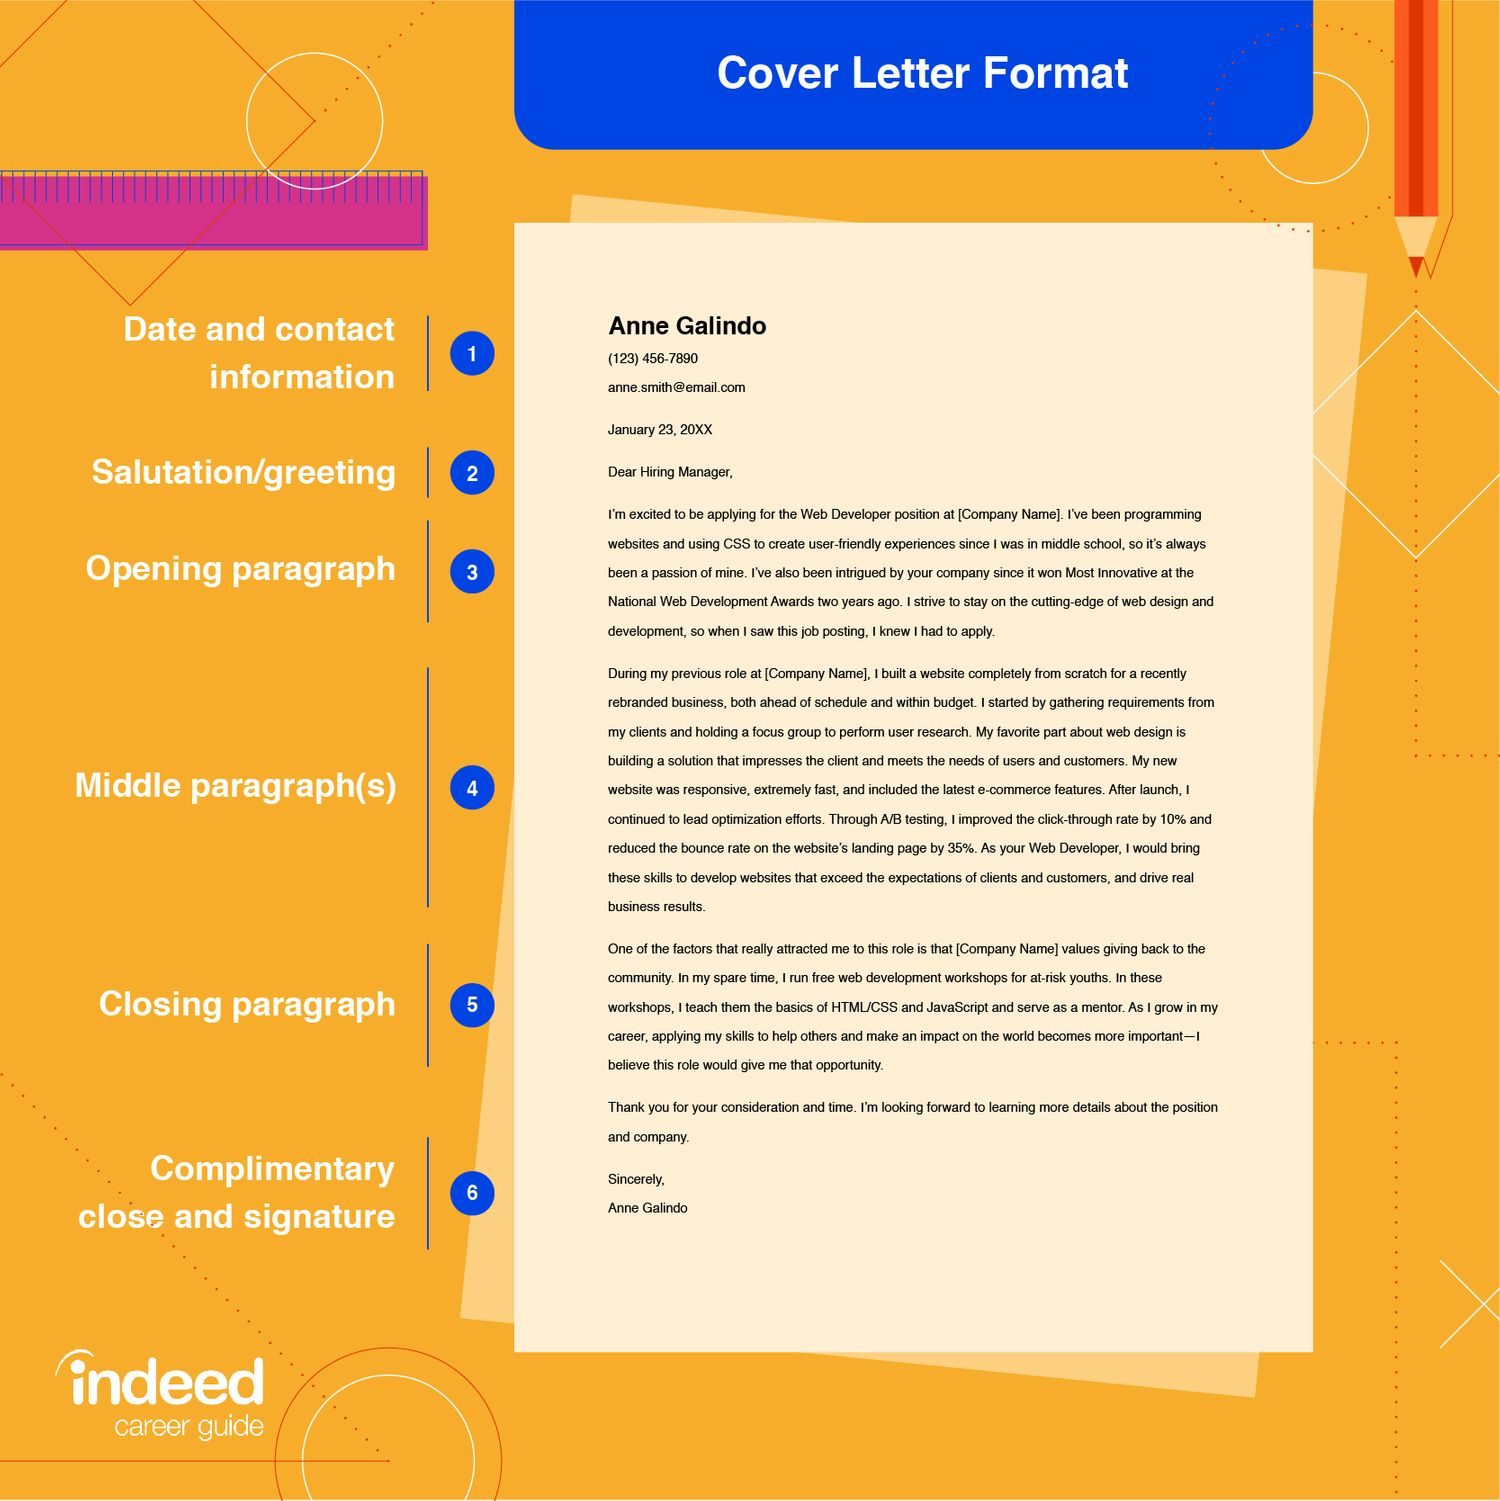 to write cover letter indeed apply with resume reddit resized lvn objective assistant Resume Apply With Indeed Resume Reddit